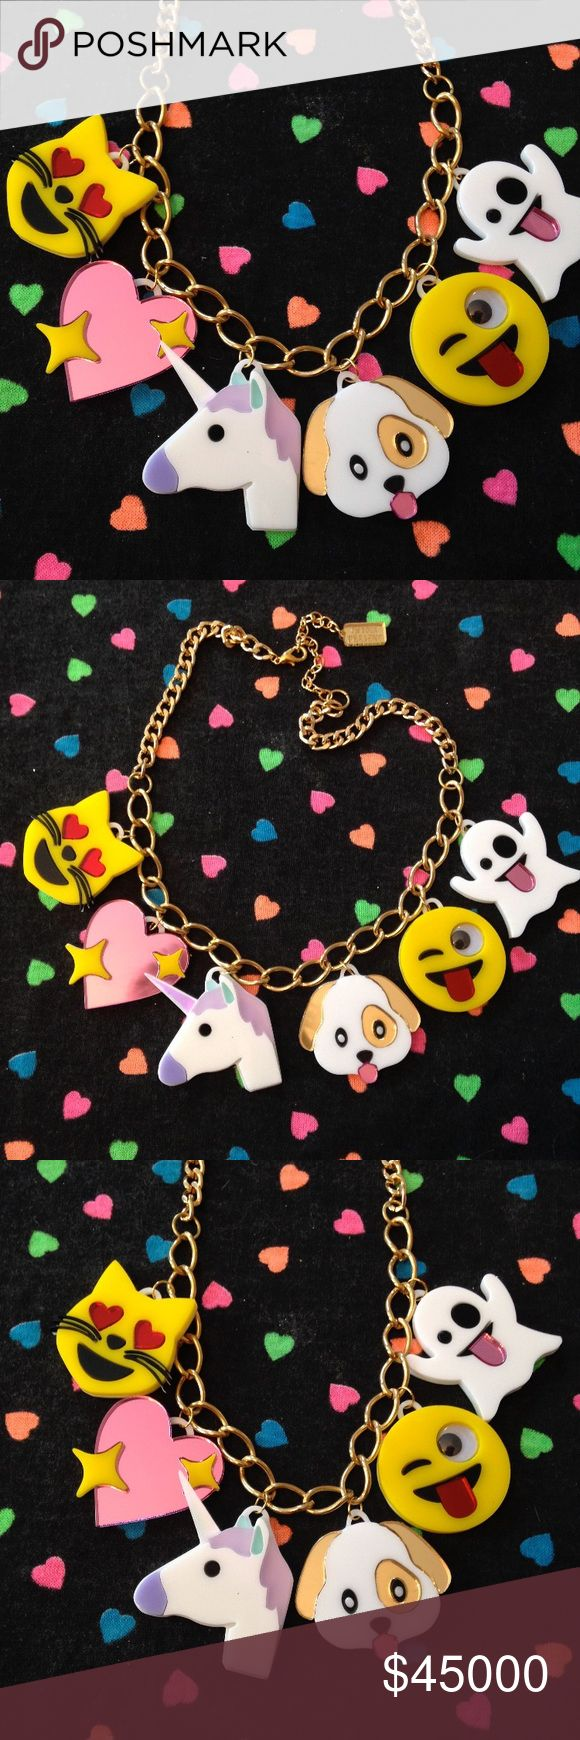 "Emoji Love Acrylic Charm Necklace The 1.5"" charms for this necklace have been laser cut out of a mix of glitter, mirror, and opaque 1/8"" acrylic sheets all backed with a thinner 1/16"" thick white acrylic. The necklace hangs from a thick, gold chain that measures 16"" long with a 3"" extender chain.   ⭐️Like to be notified of arrival via price drop.   ♠️No trades ♠️Bundle & save! ♠️Please negotiate through offer button I'm Your Present Jewelry Necklaces"